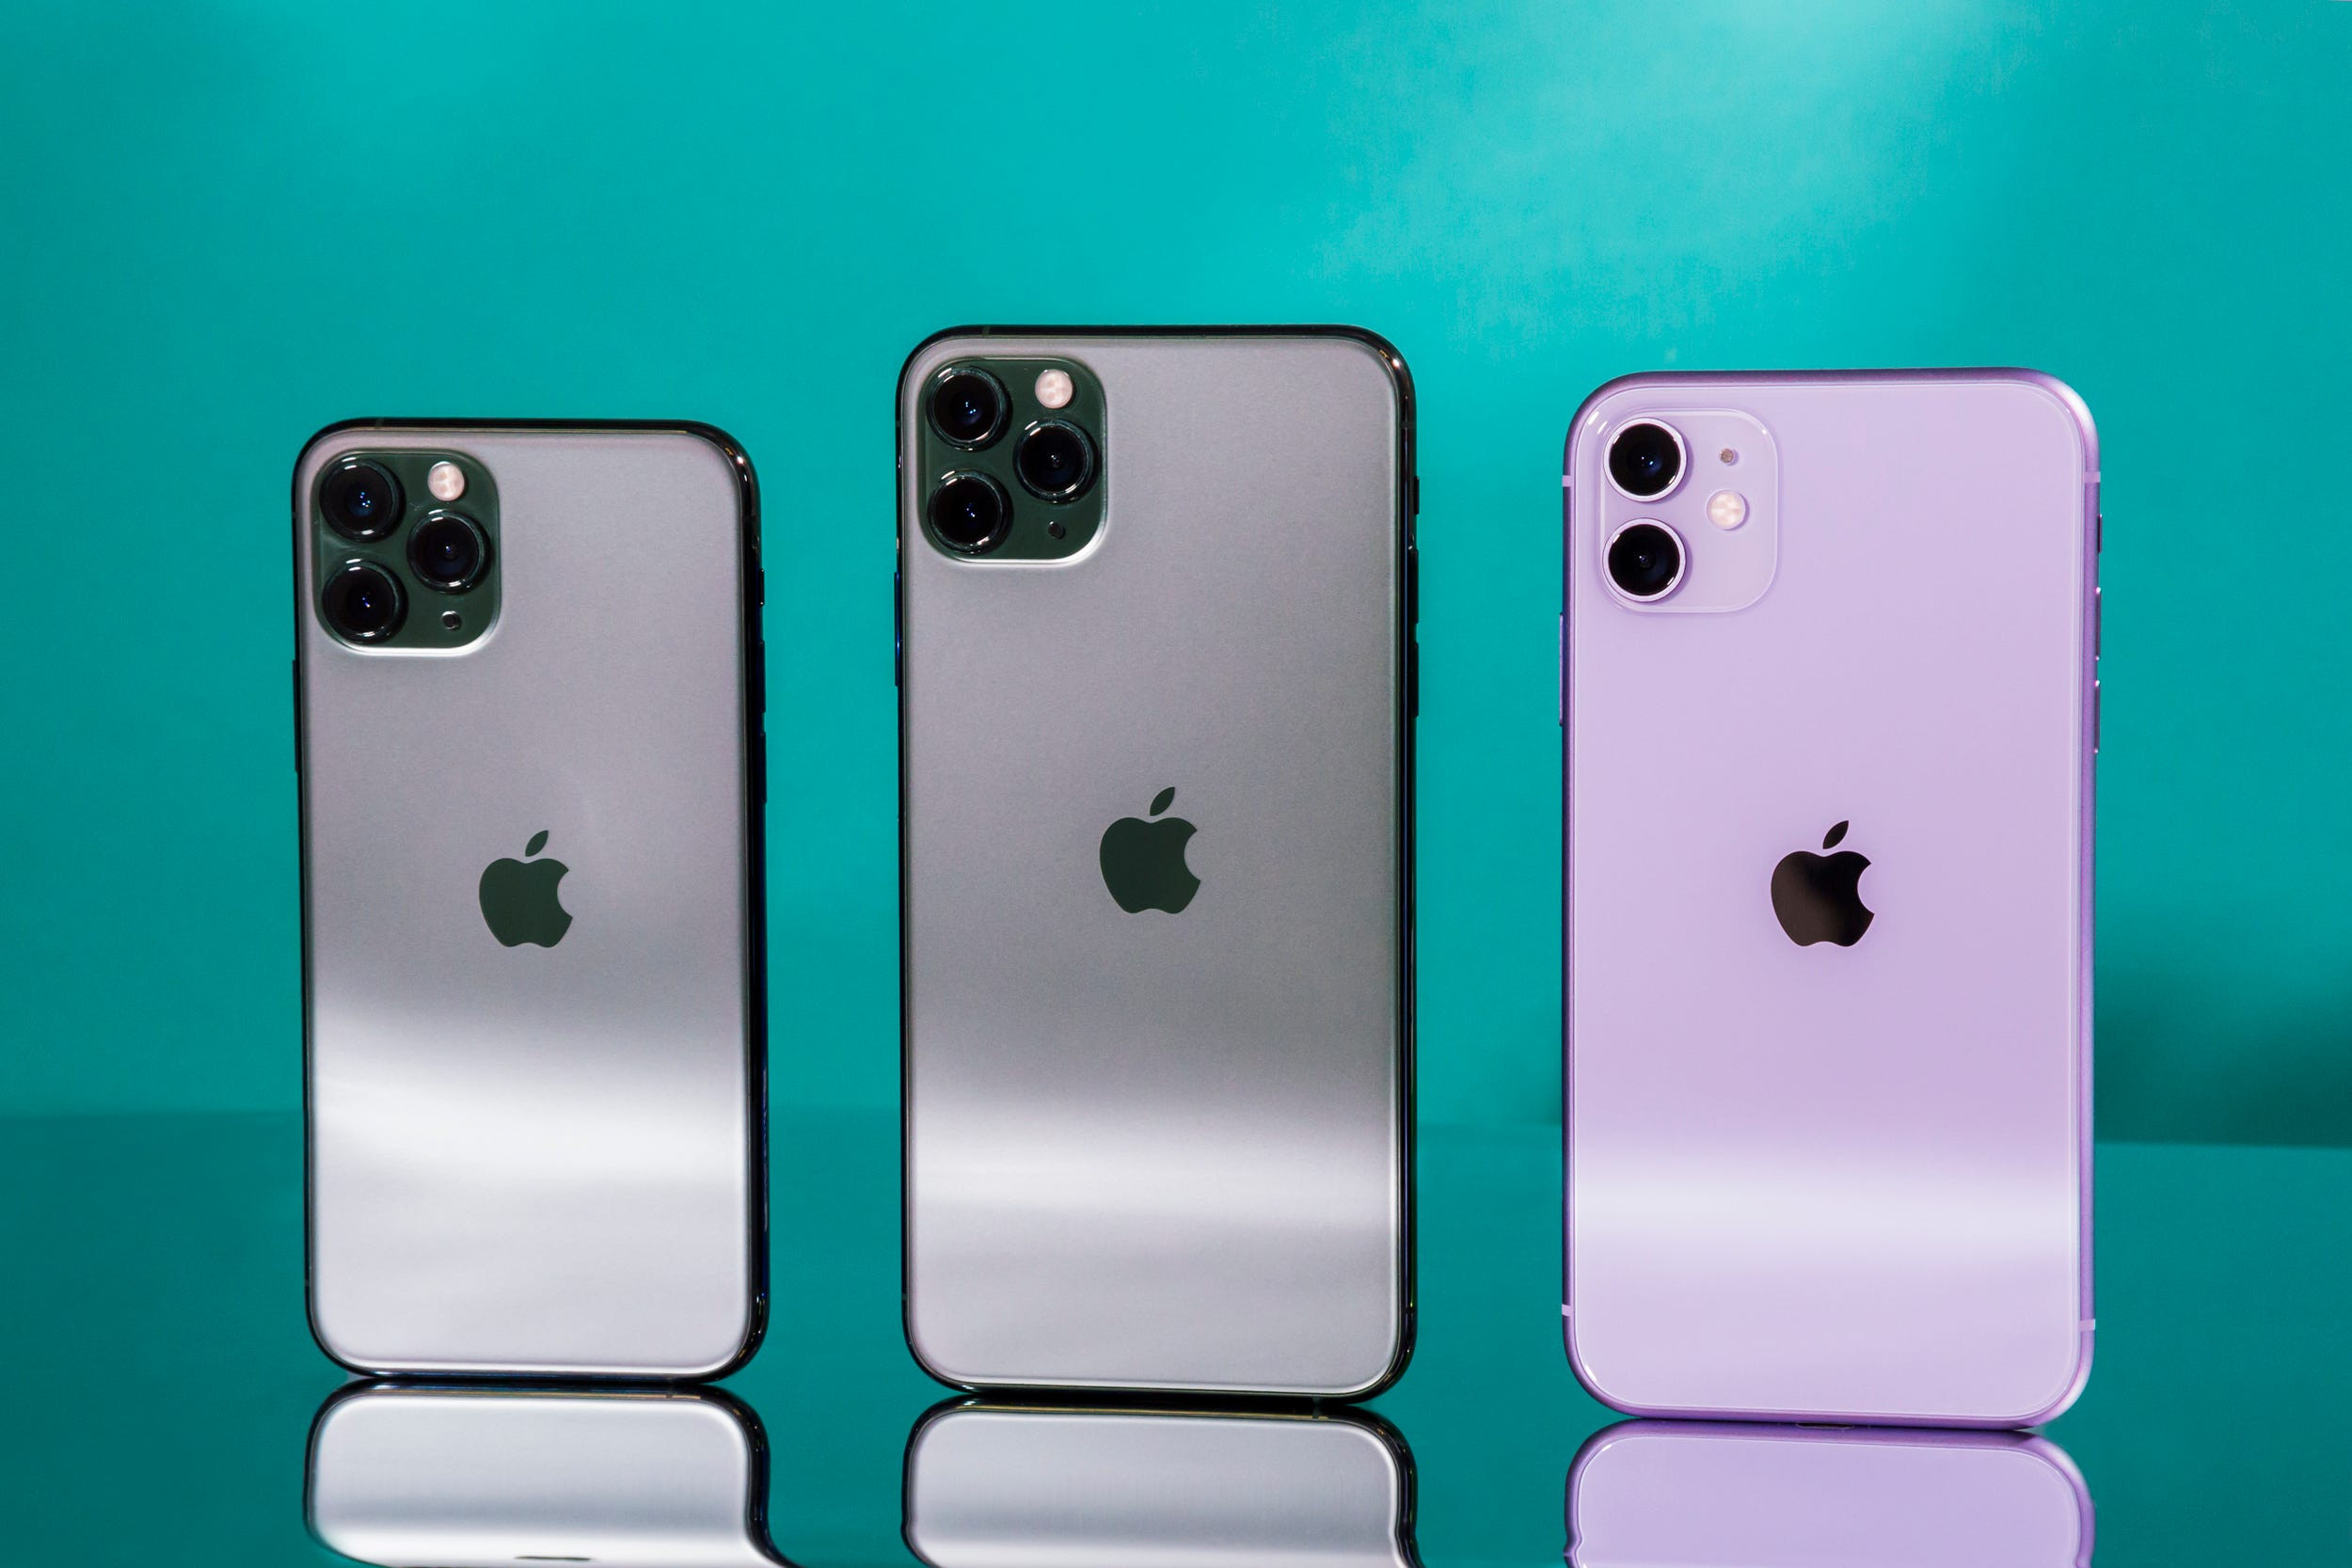 iPhone 6 May Be Introduced in Fall, According to an Apple Partner